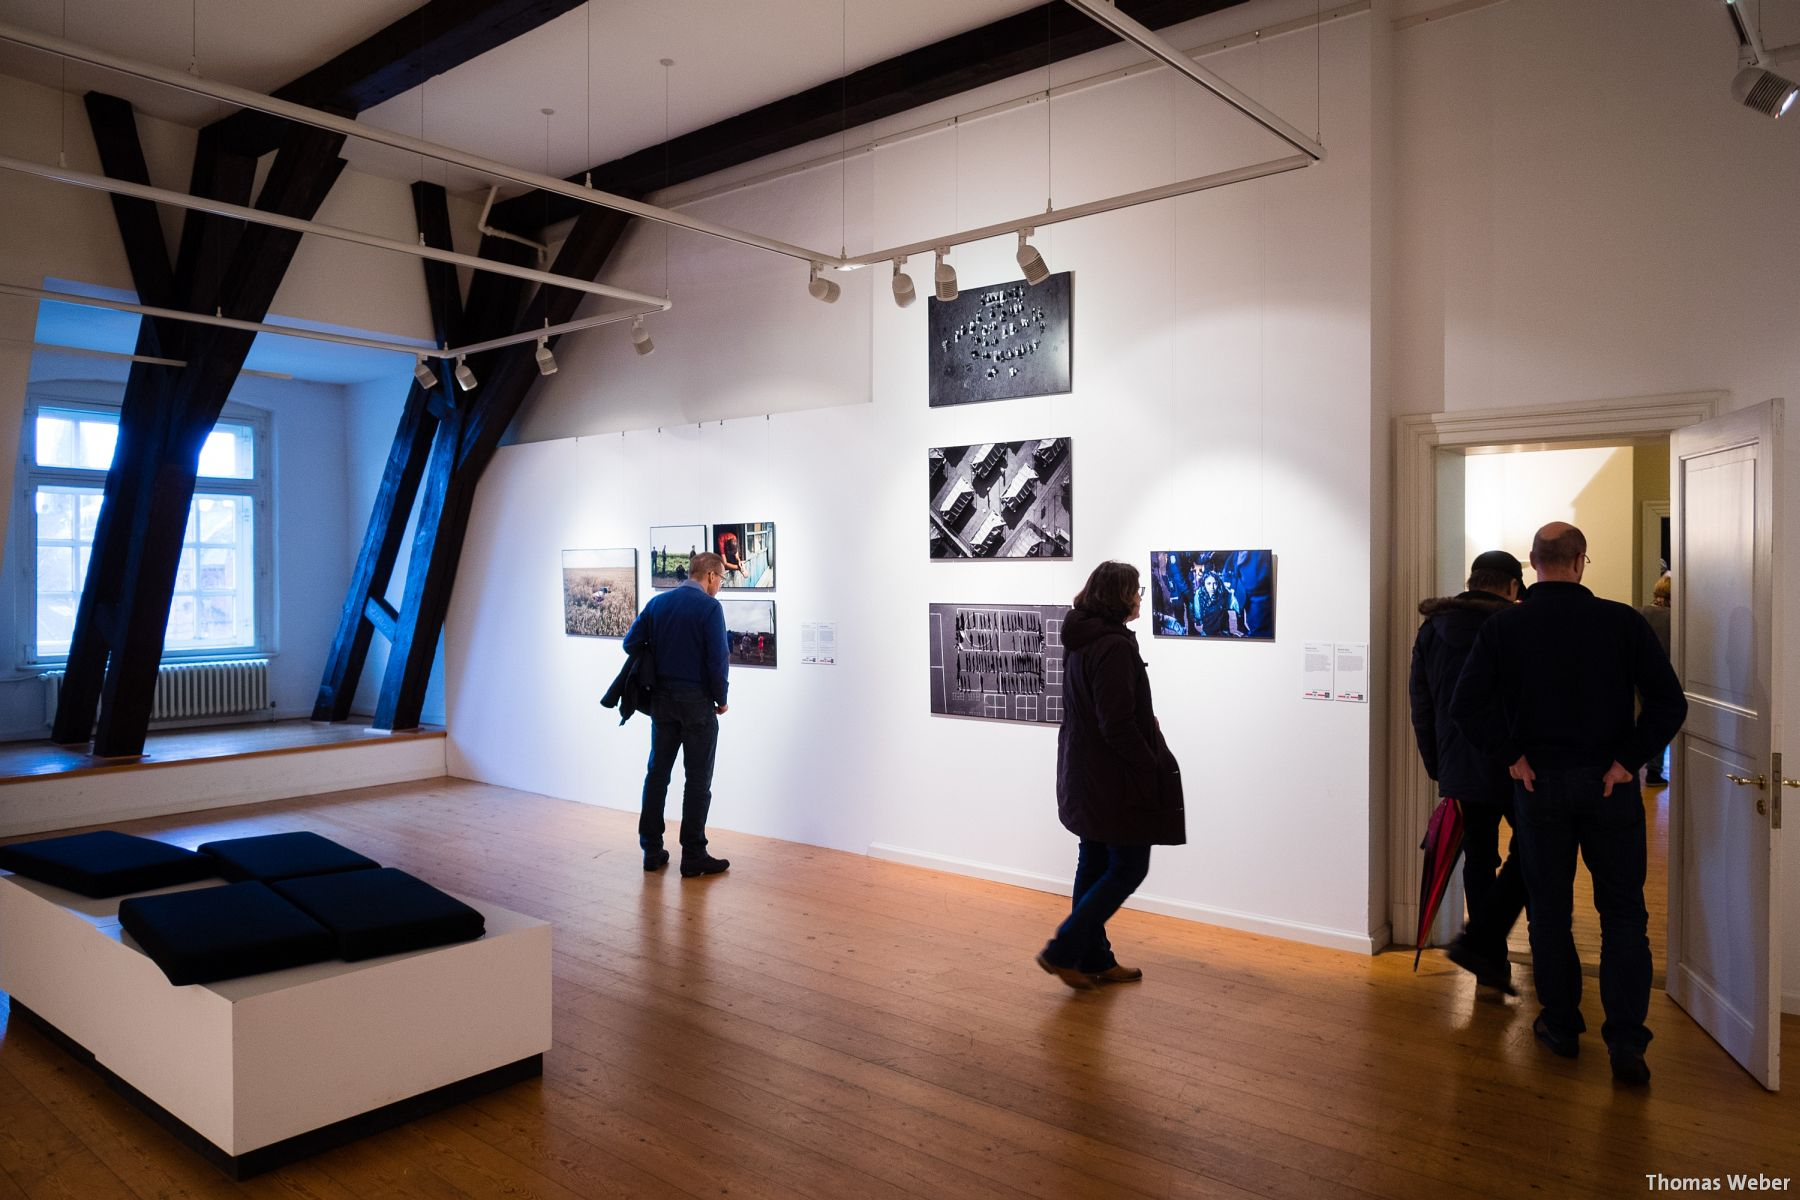 Fotograf Thomas Weber aus Oldenburg: World Press Photo Award 2015 Ausstellung im Oldenburger Schloss